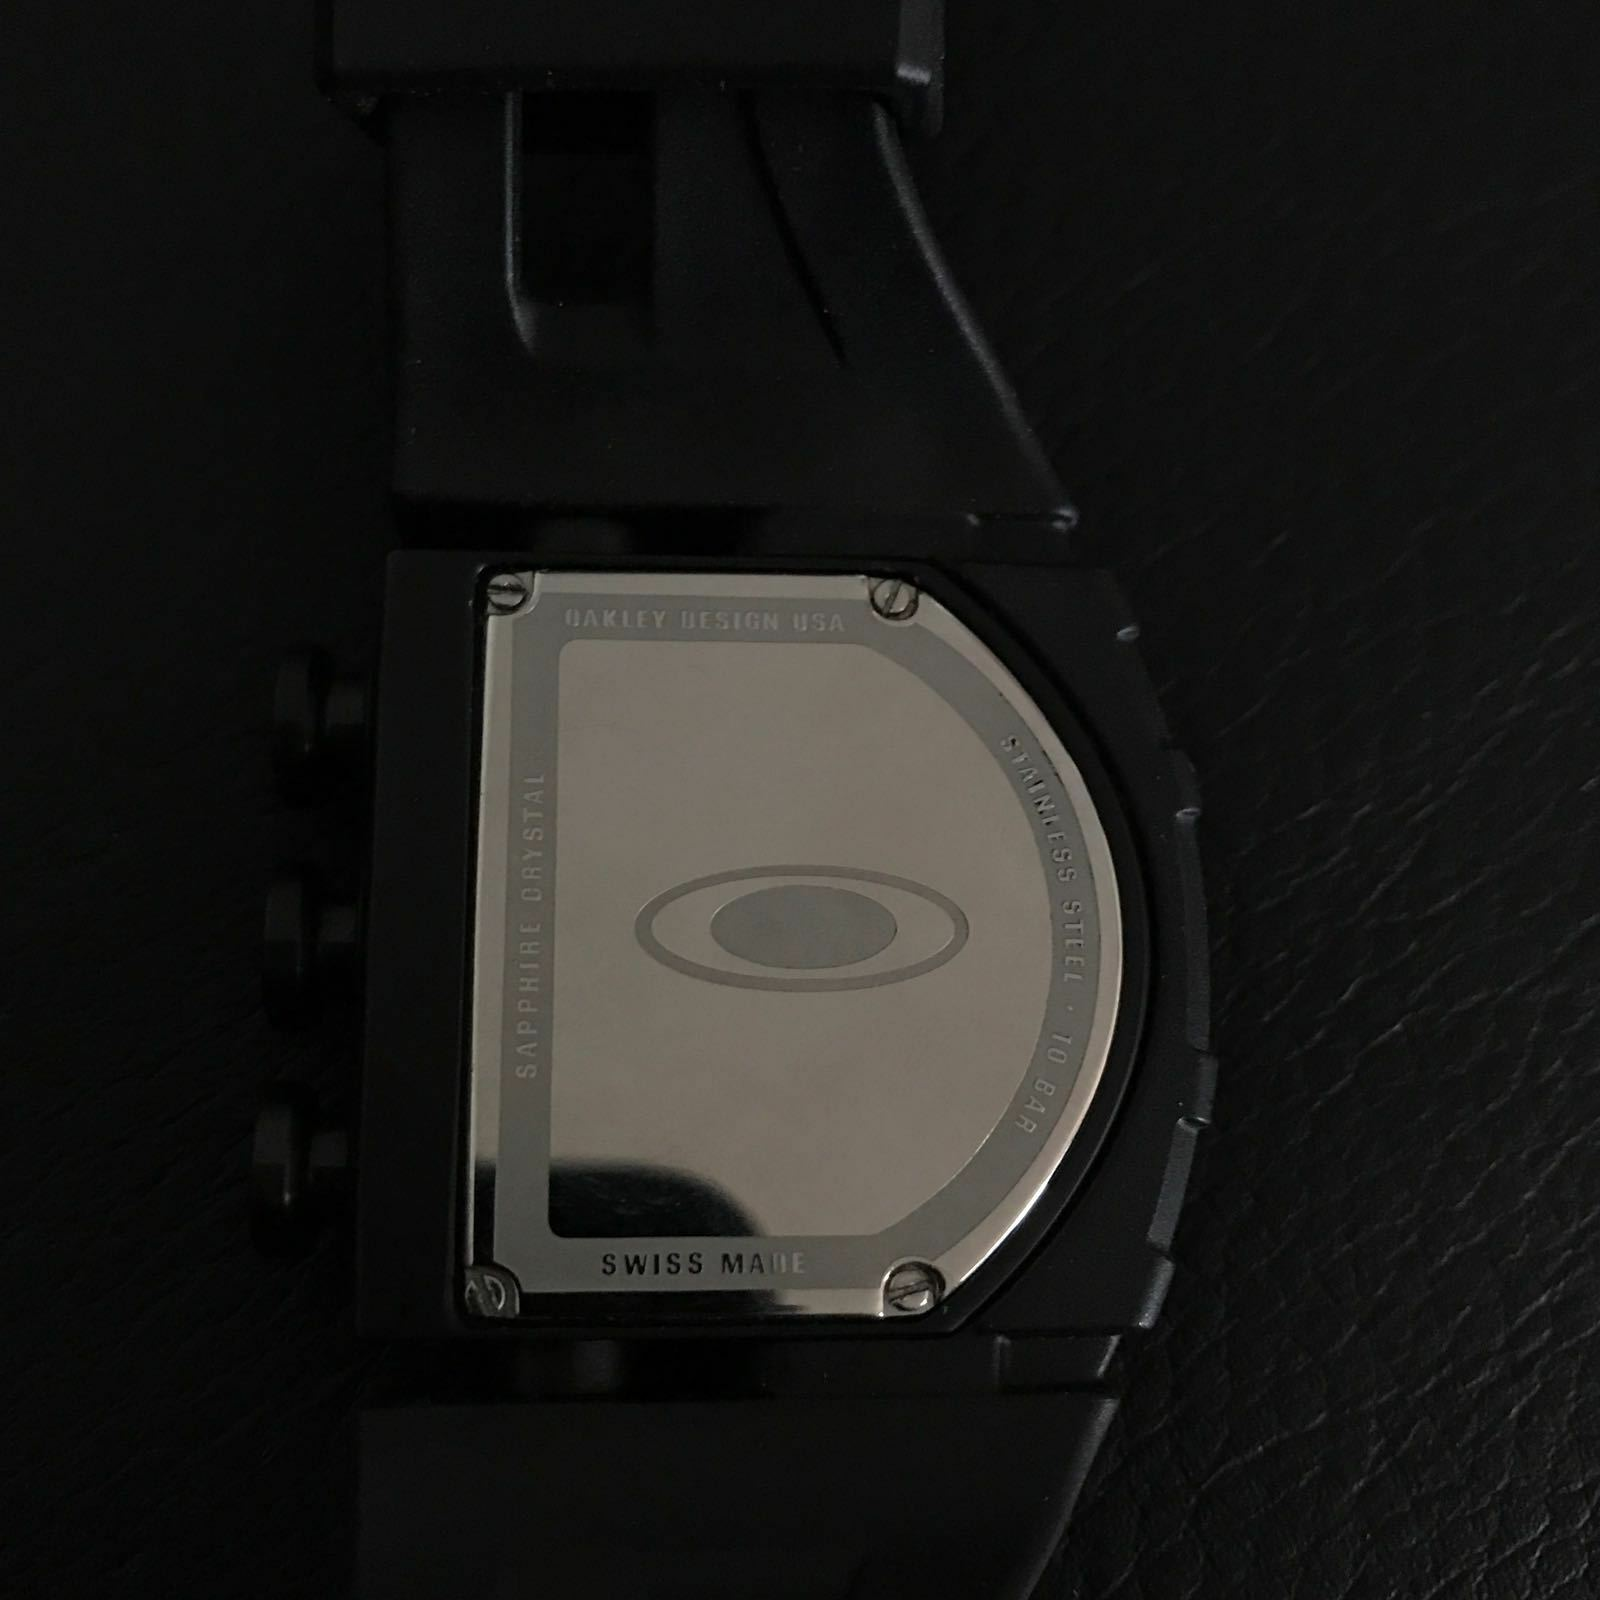 s l1600 oakley fuse box 26 300 wrist watch for men ebay oakley fuse box review at reclaimingppi.co